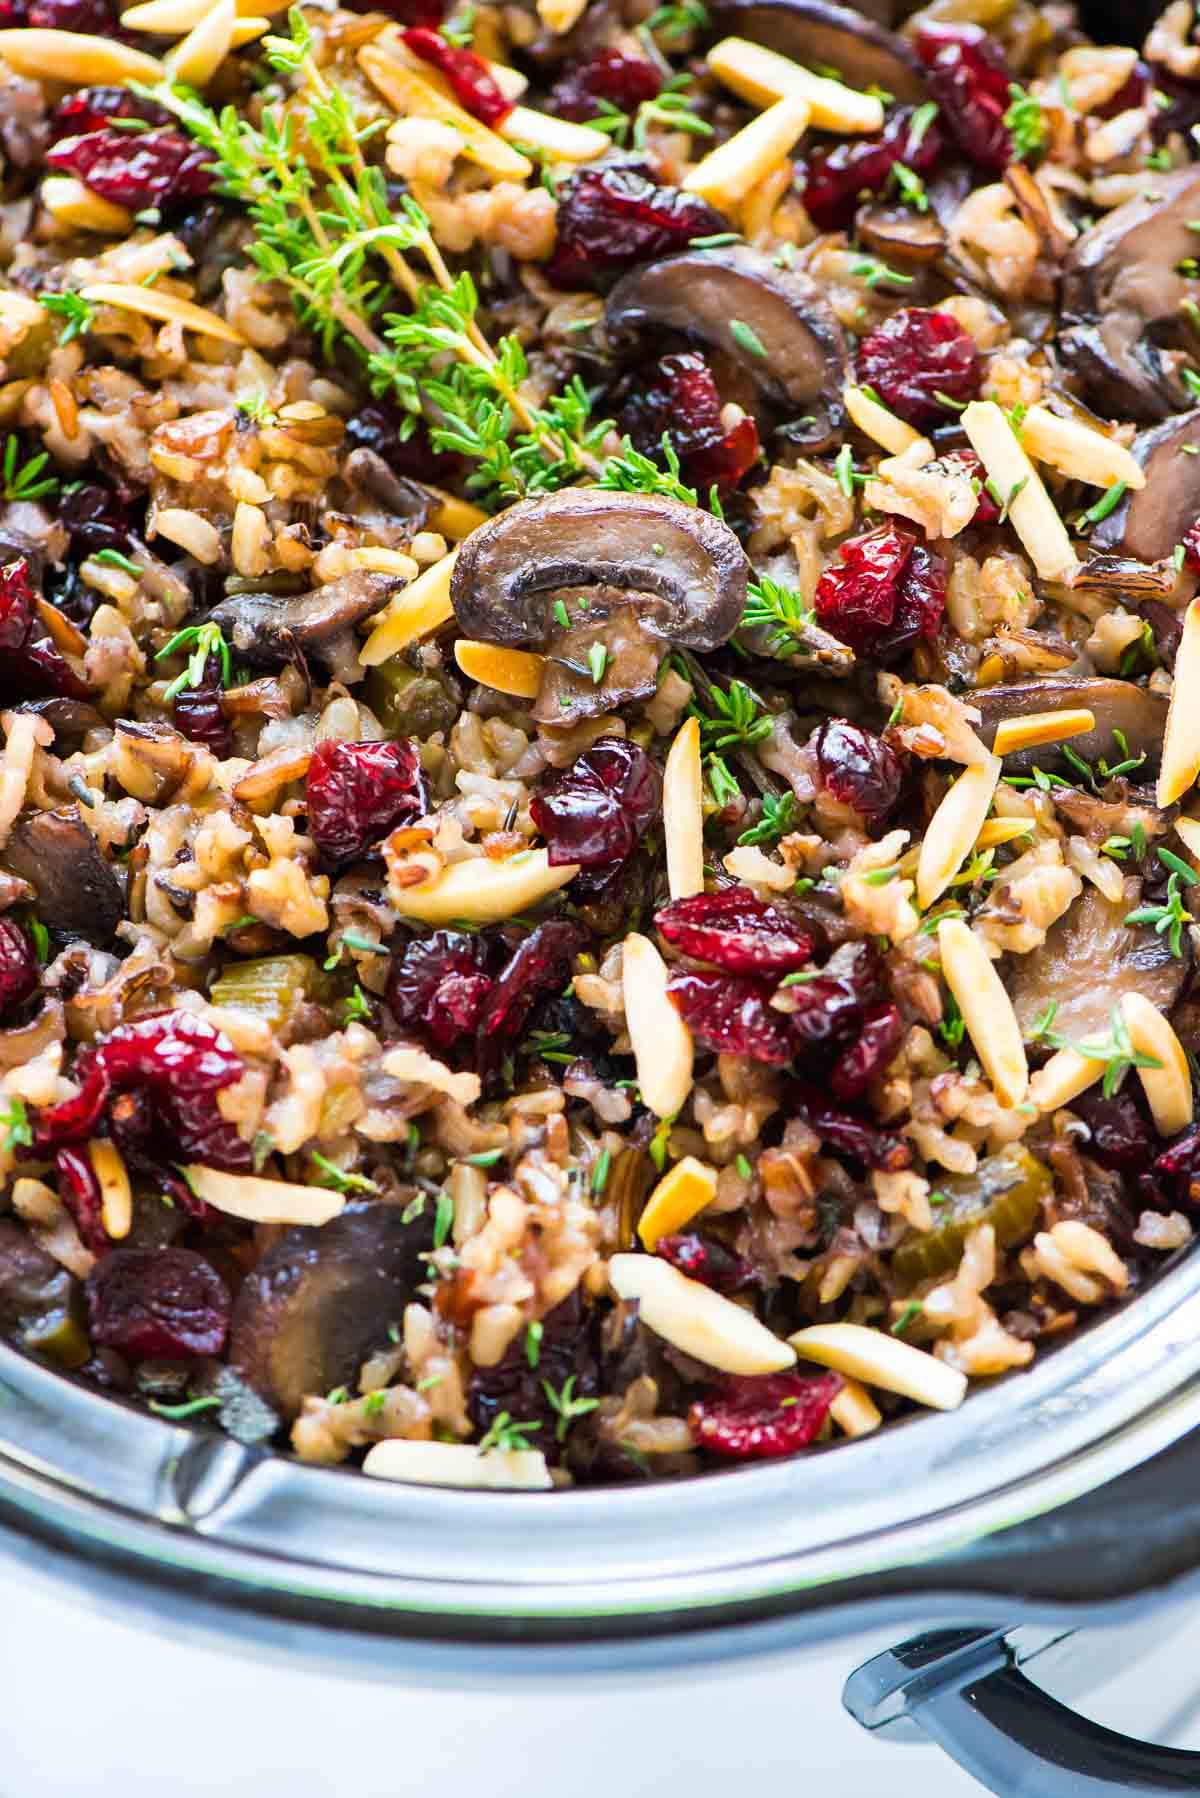 Thanksgiving Wild Rice Recipe  Crock Pot Stuffing with Wild Rice Cranberries and Almonds